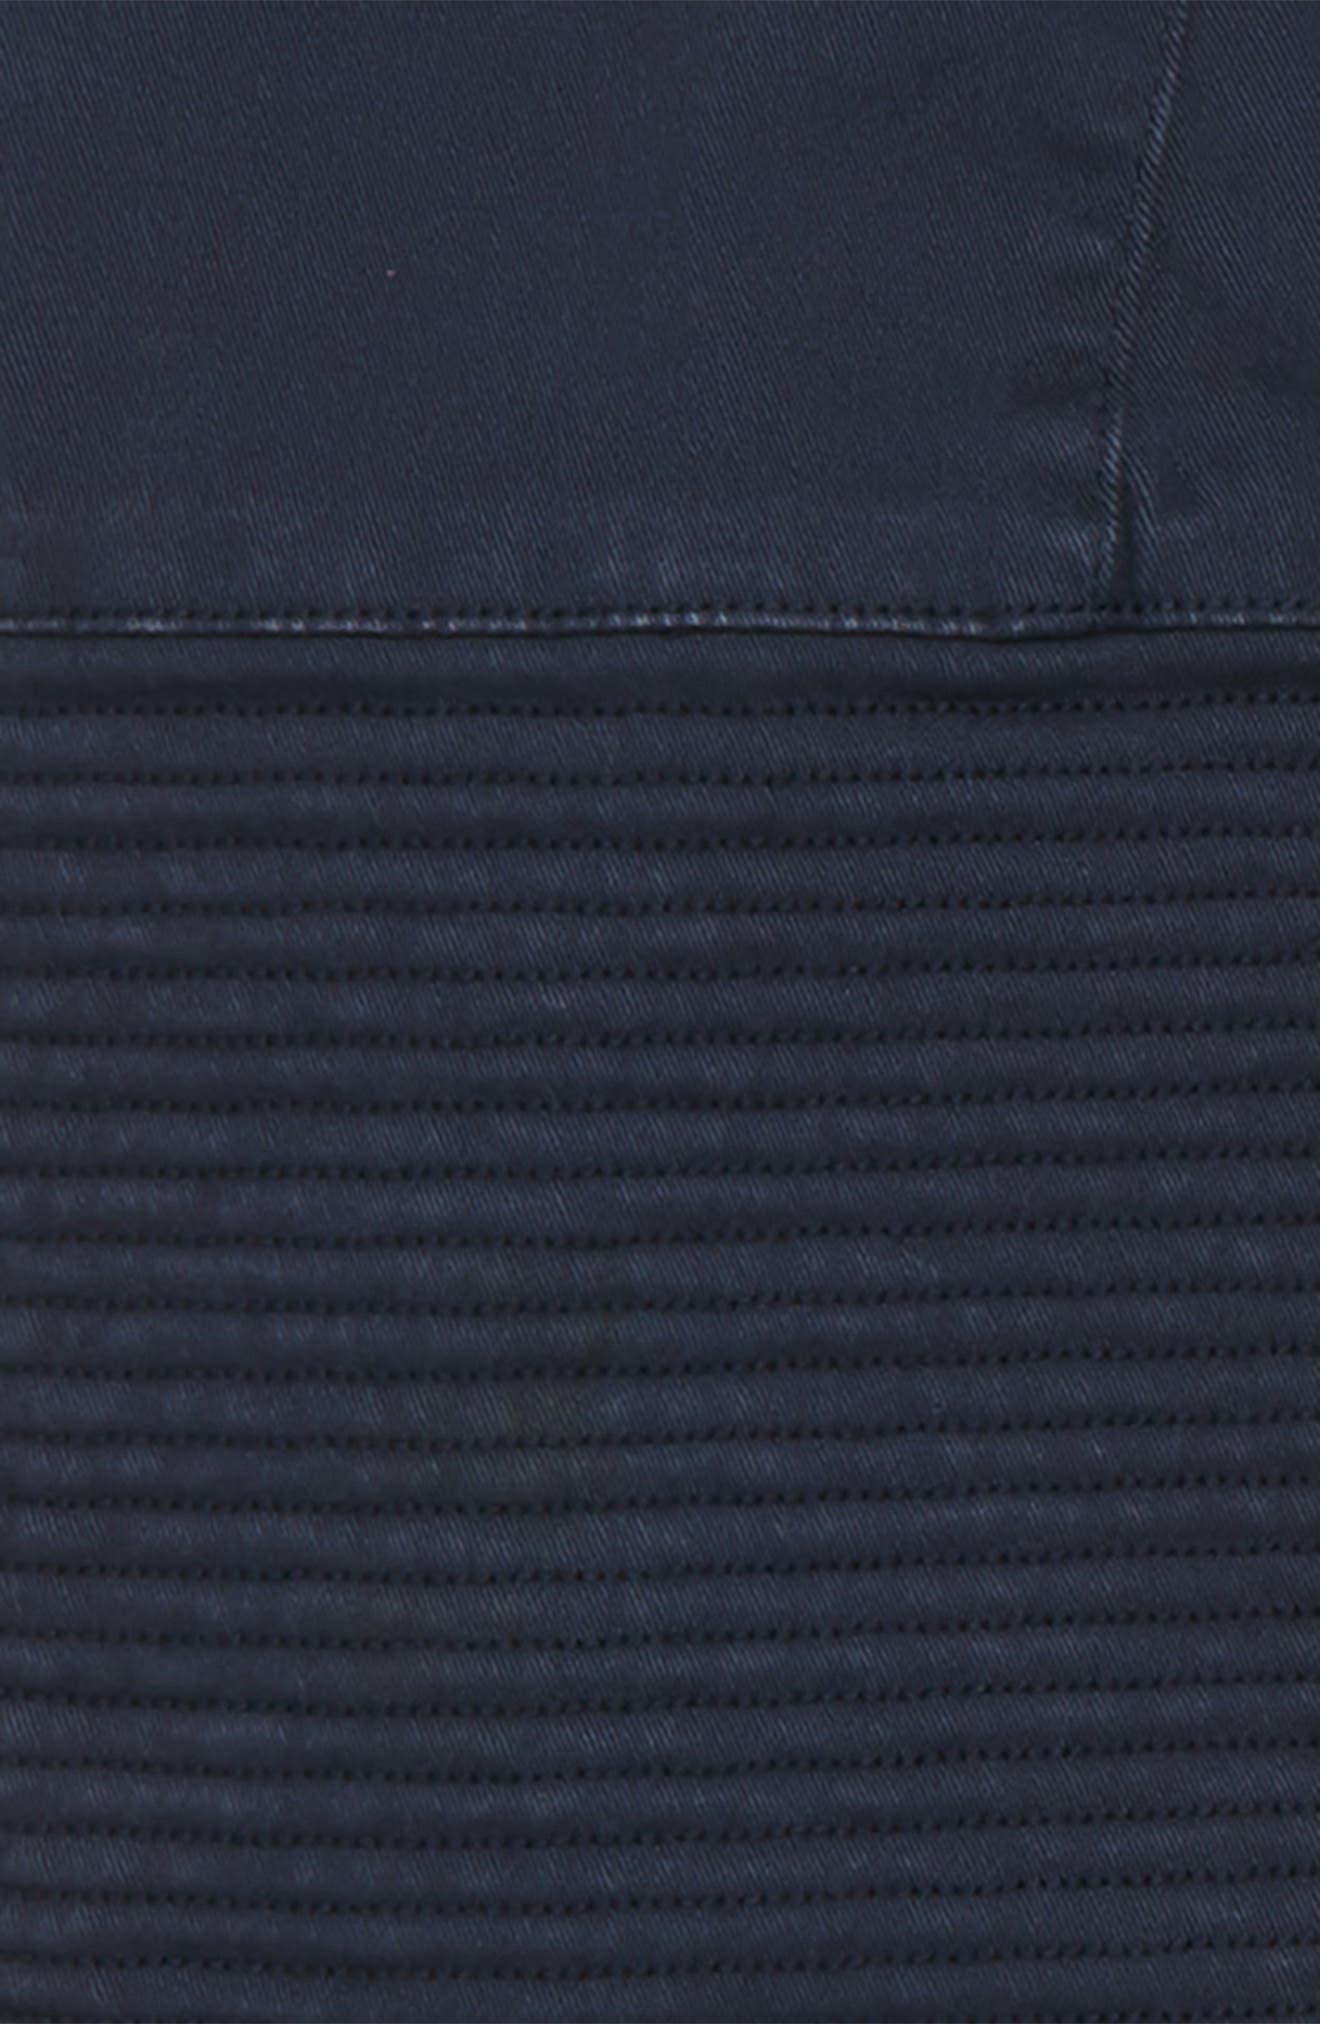 Moto Jogger Pants,                             Alternate thumbnail 3, color,                             NAVY INDIA INK